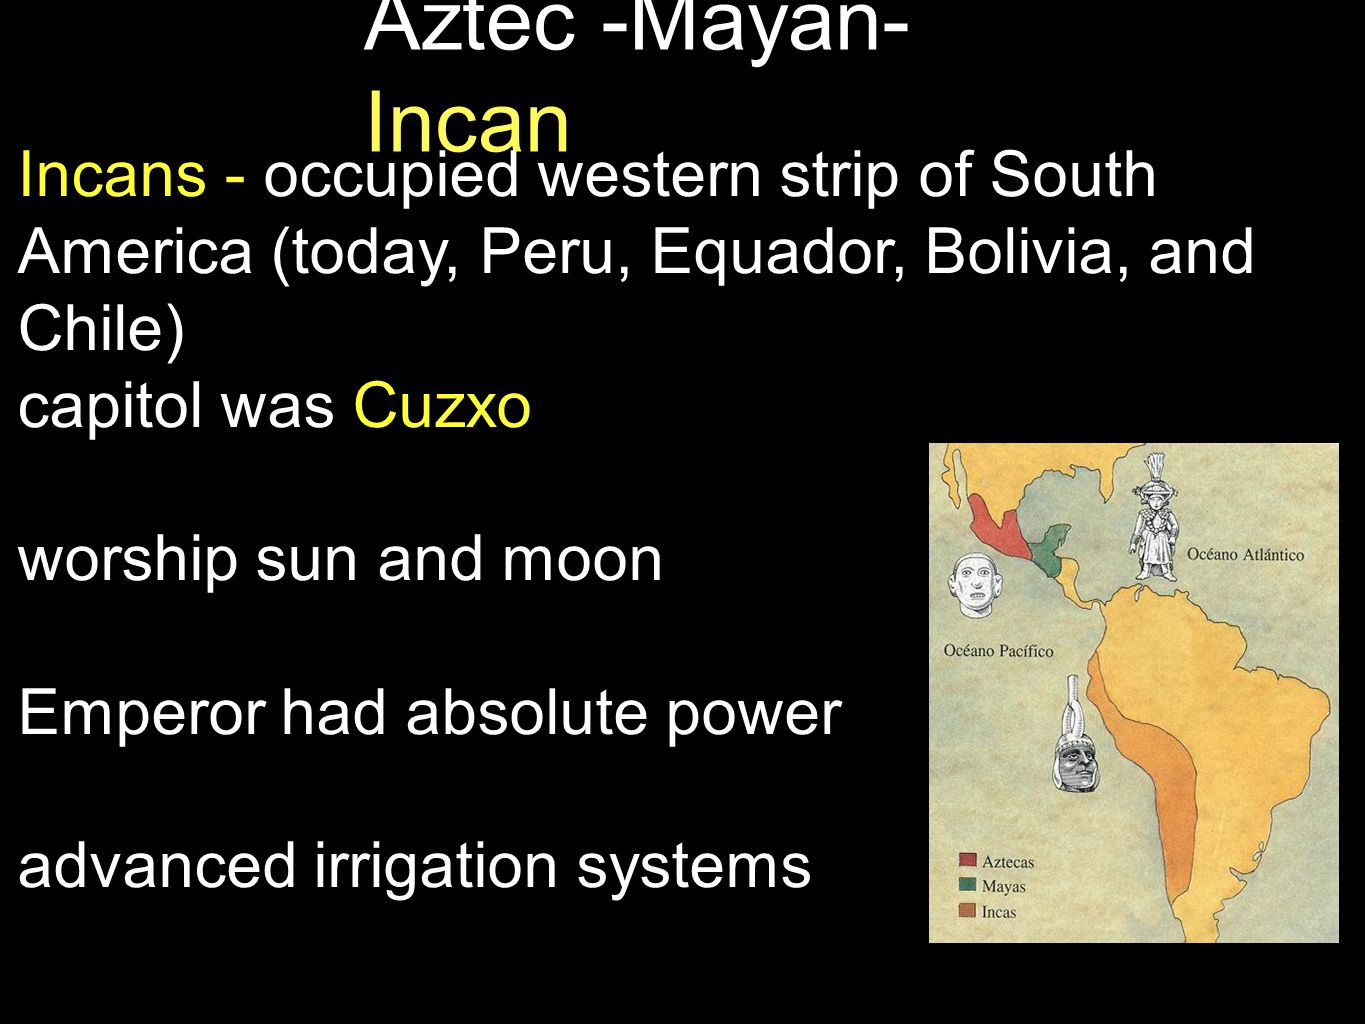 Aztec -Mayan- Incan Used llamas (not horses - no horses in North or South America...that will be important later) Spoke Quechua- excellent system of roads and communication though never developed writing - used quipu - series of knots on parallel strings produced ceramics, textiles, metals.